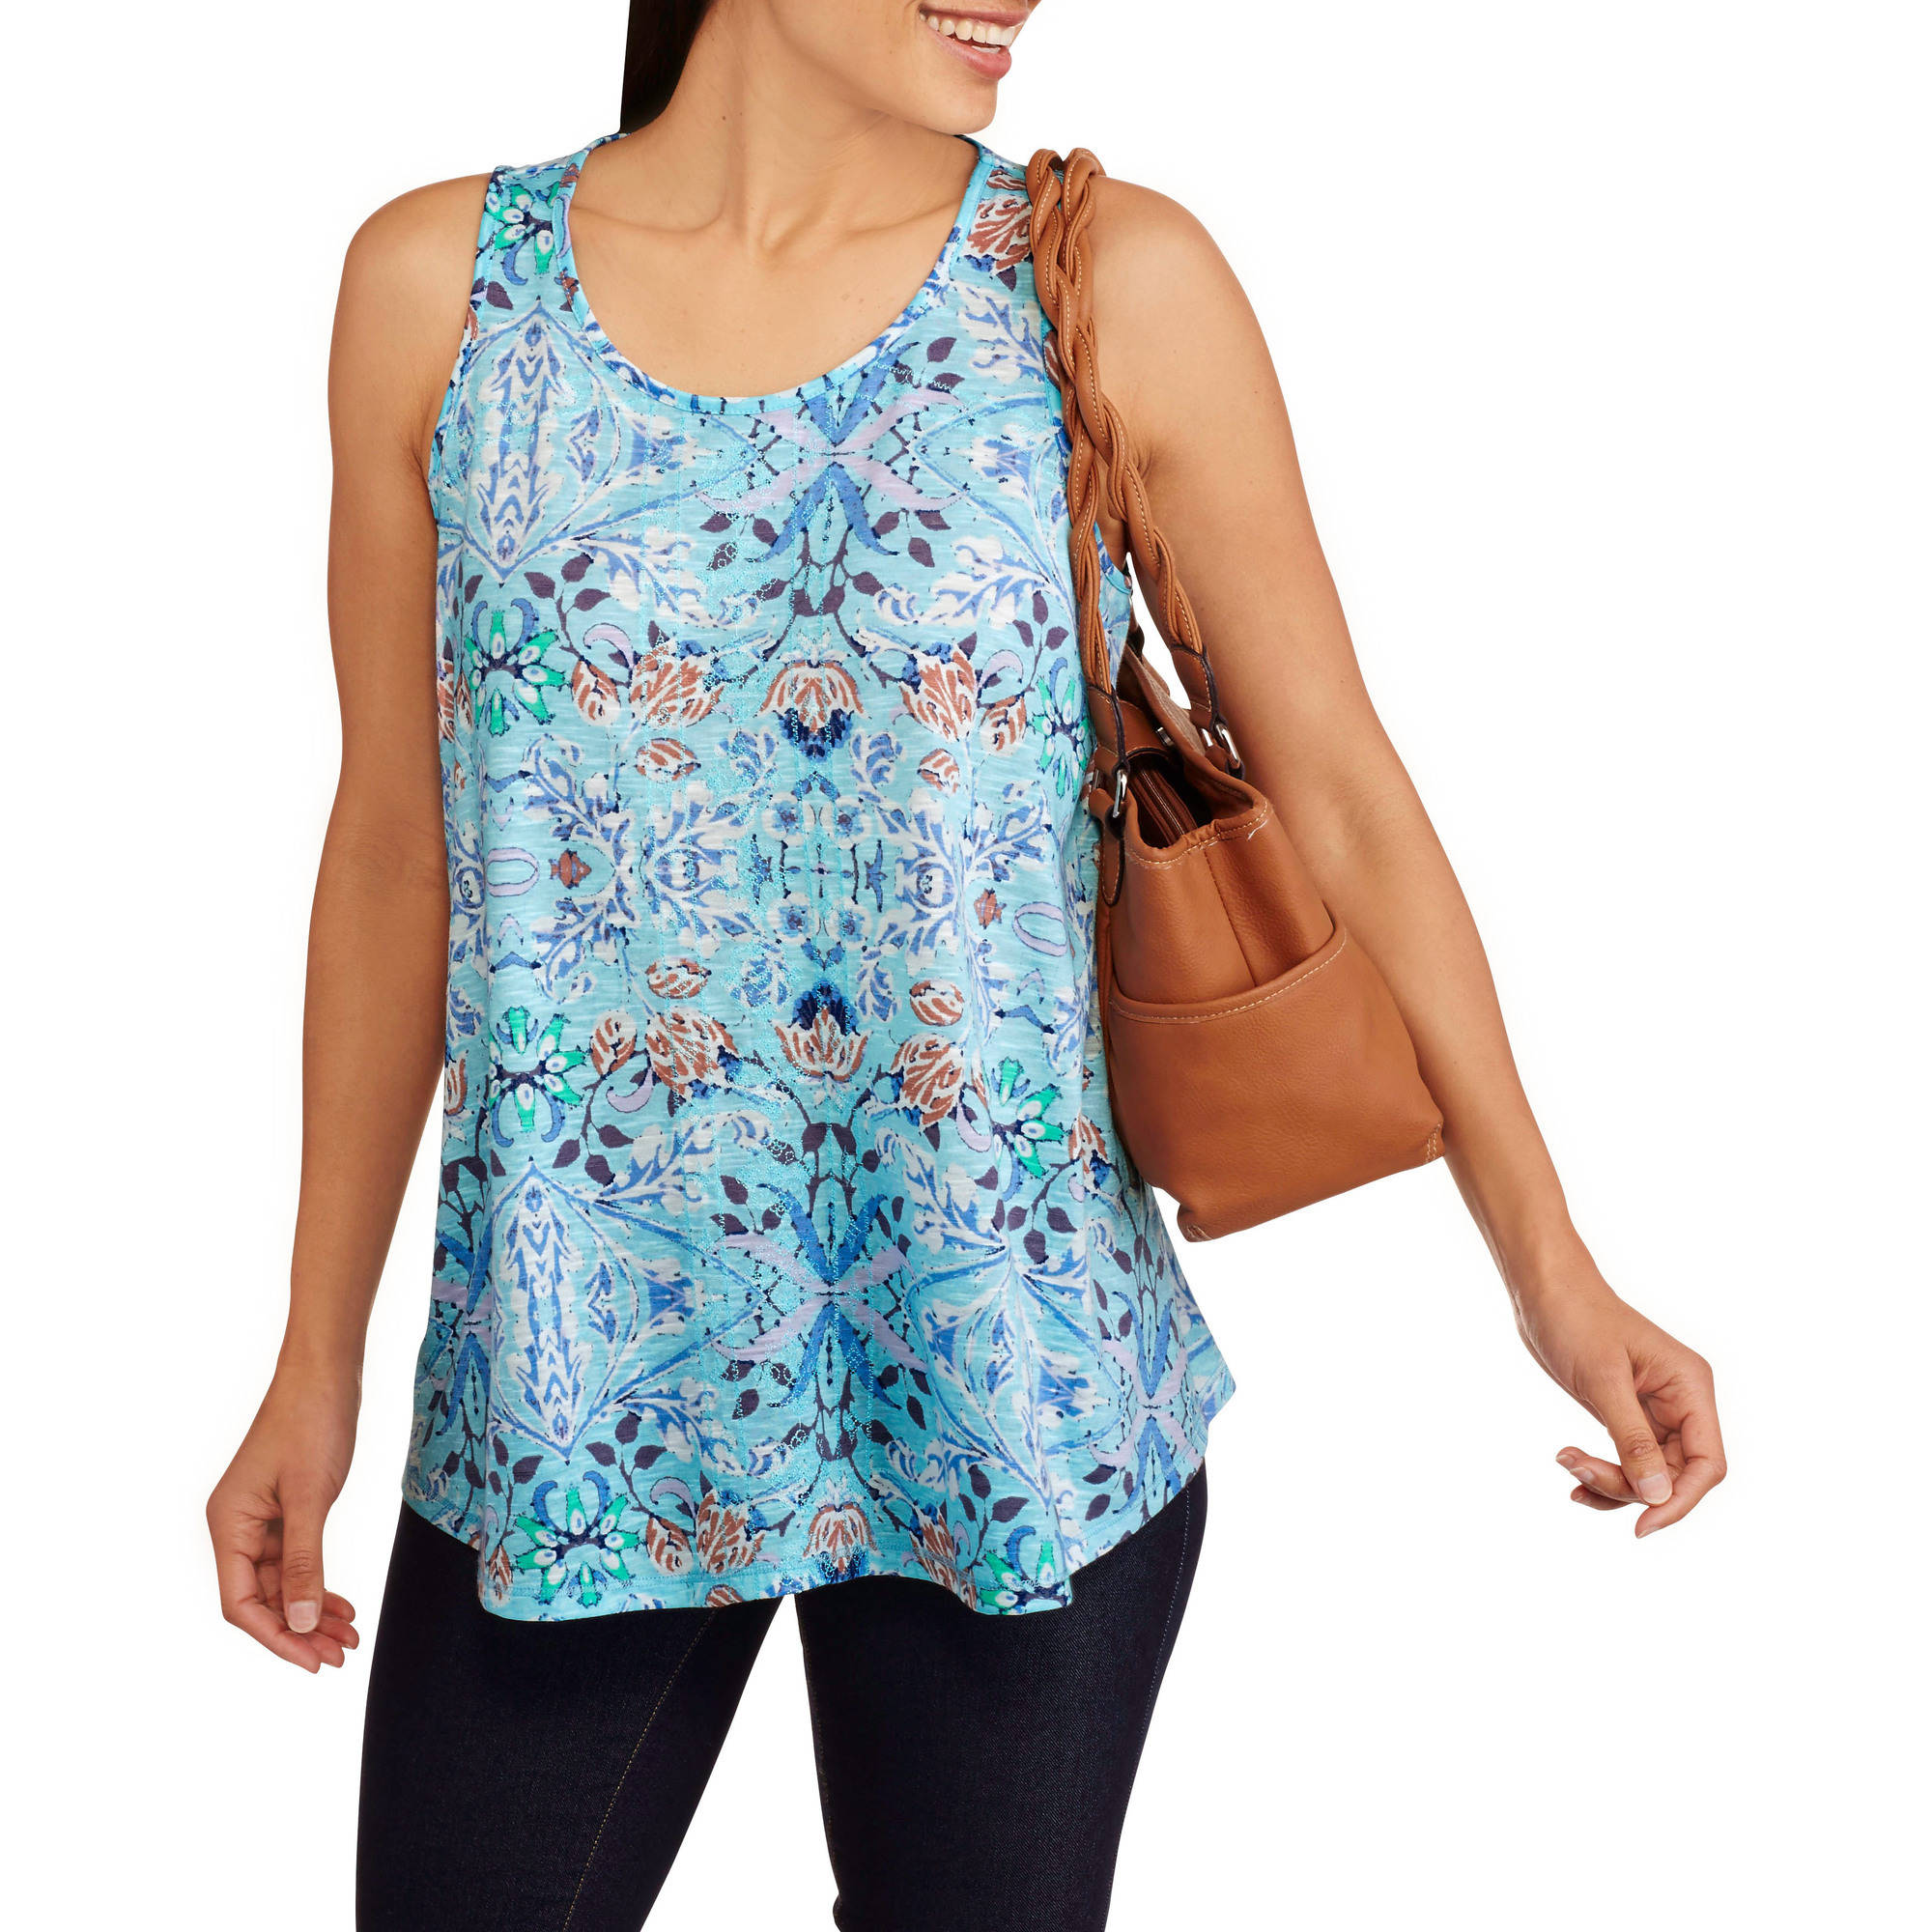 California Happenings Women's Printed Relaxed Fit Tank Top